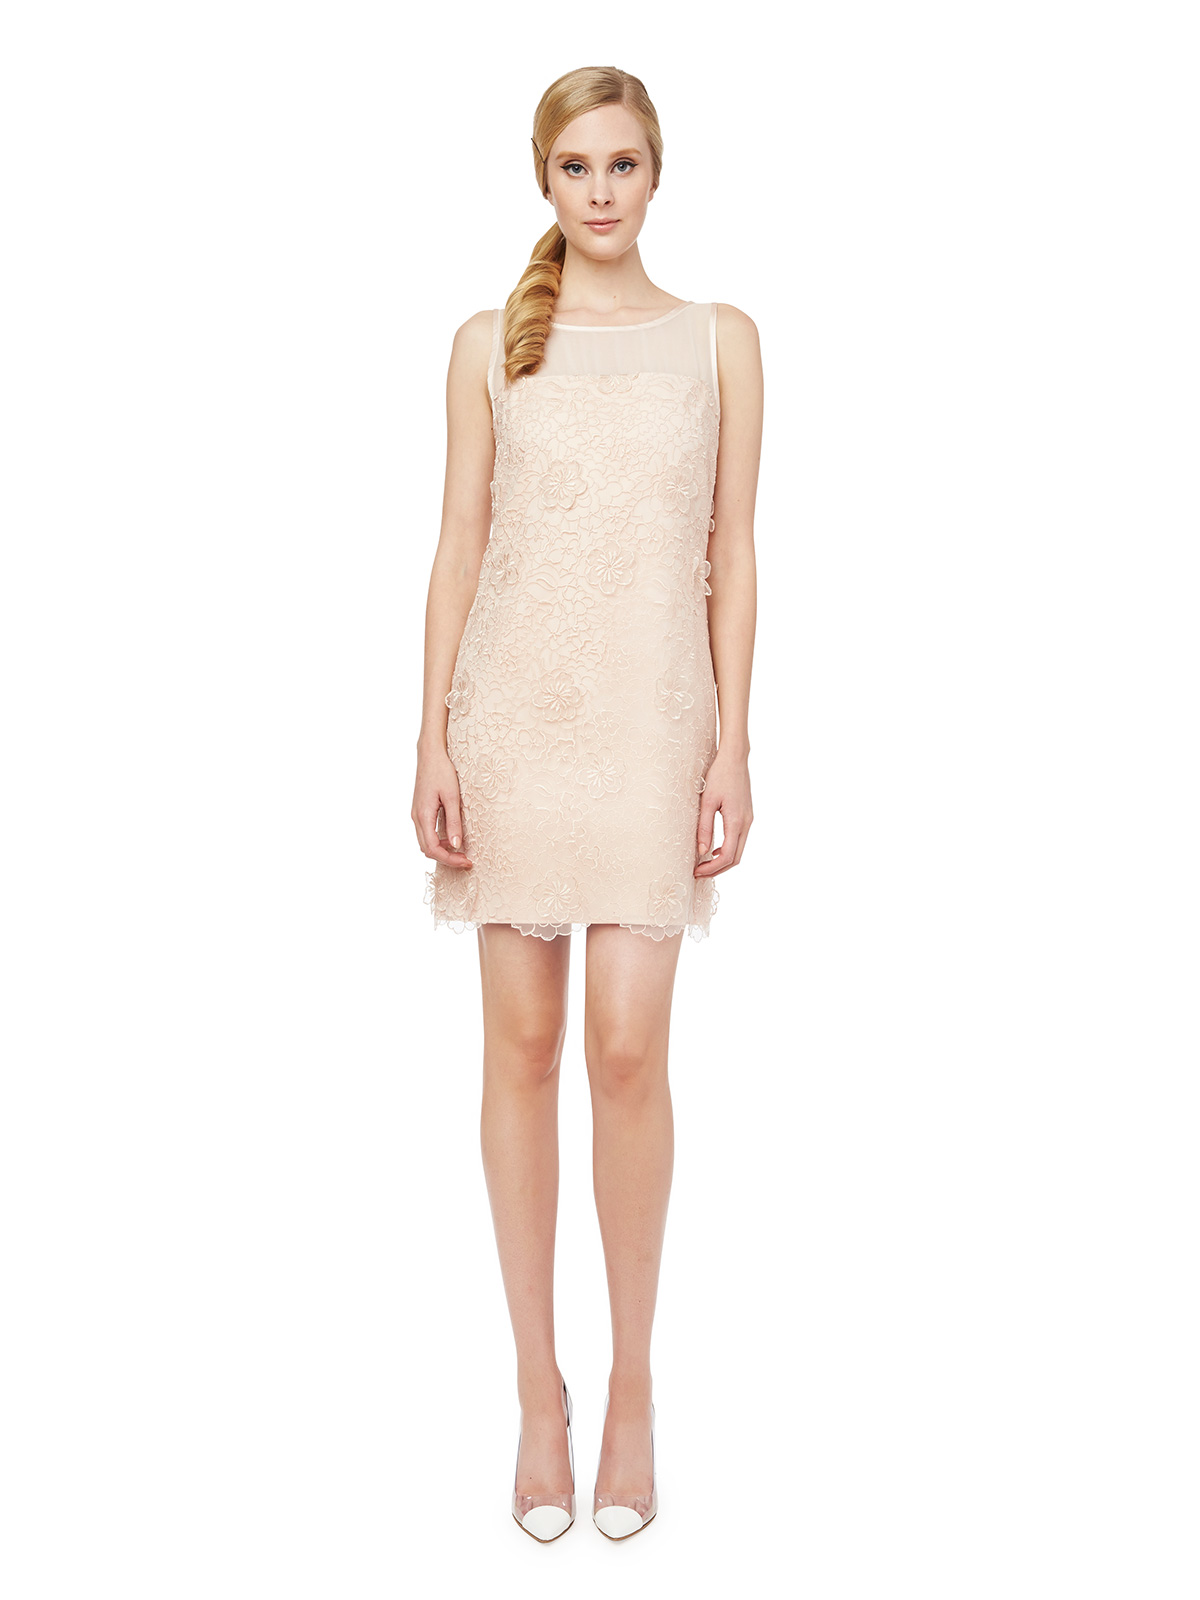 Erin fetherston for nordstrom weddings we 39 ve found your for Shift dress for a wedding